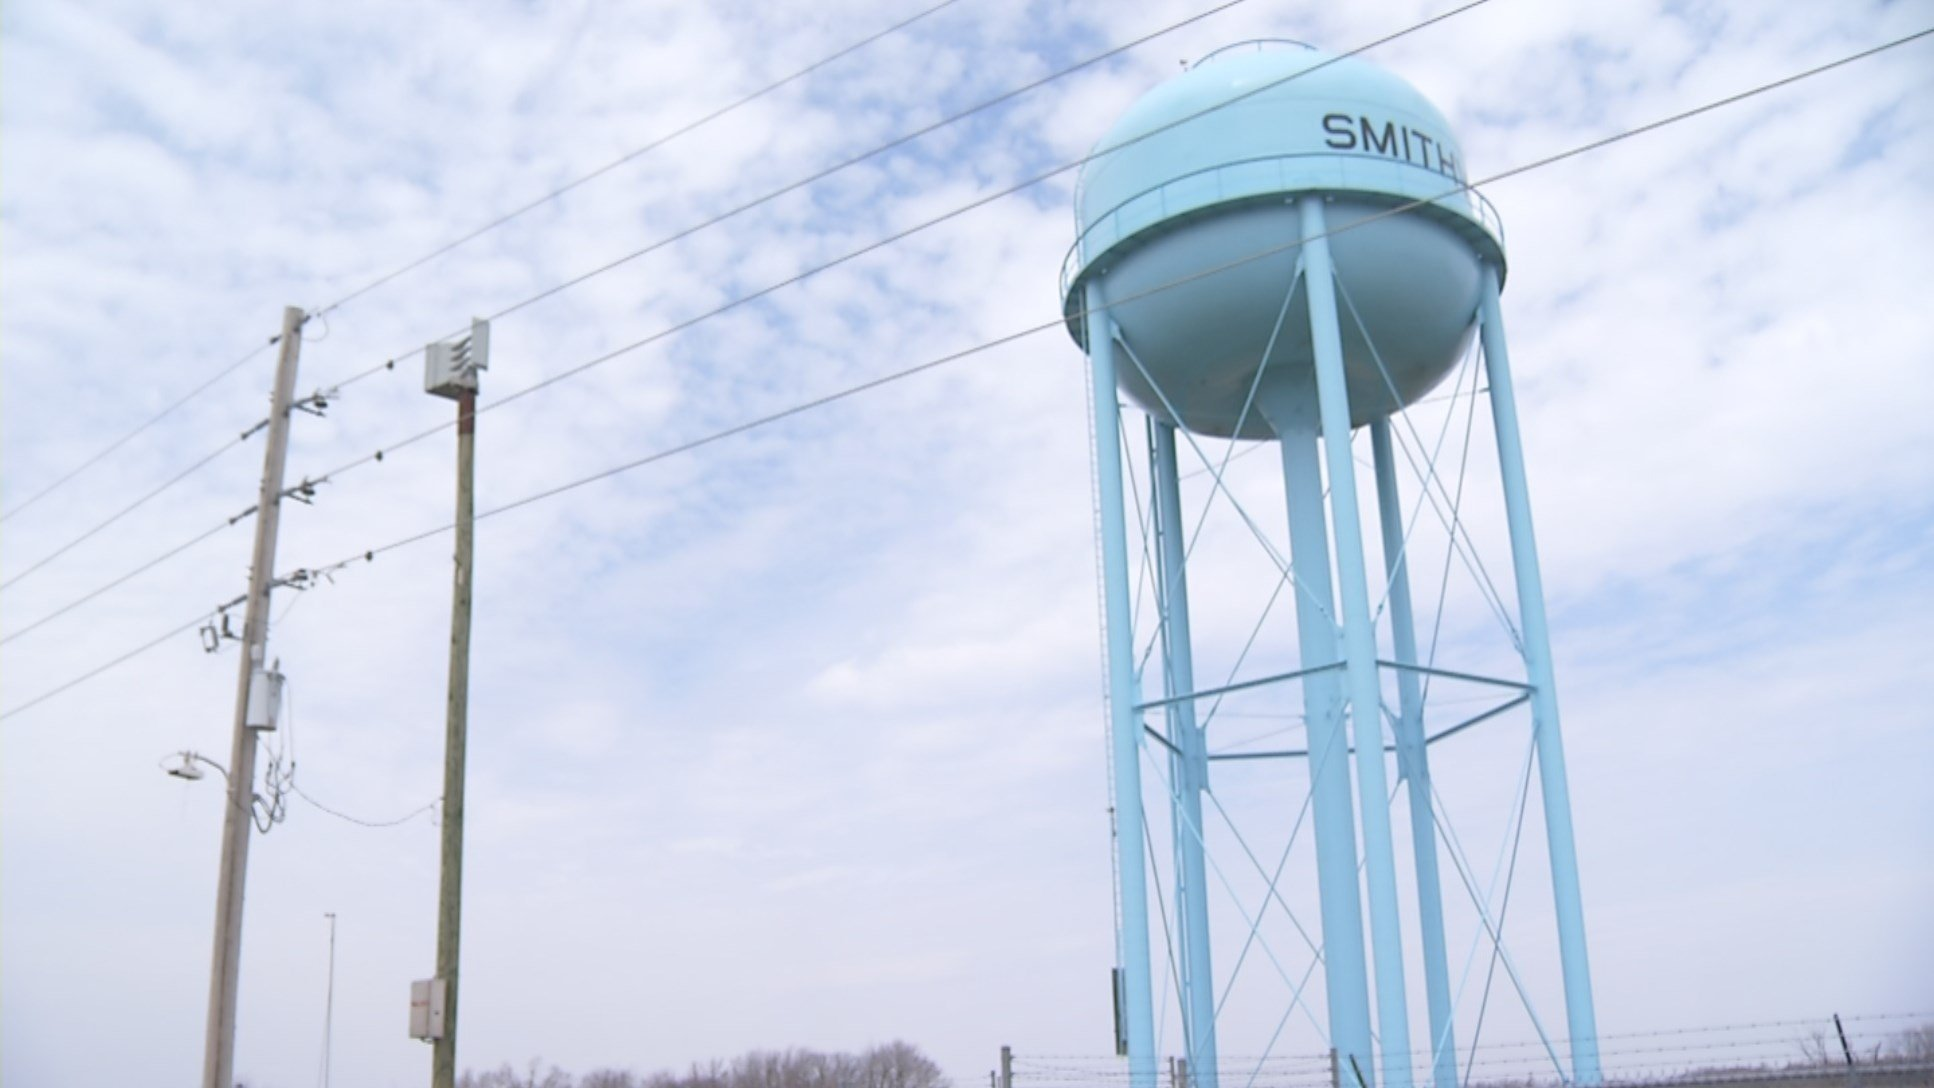 Smithville is missing a piece of its emergency warning system as storm season approaches. (KCTV5)